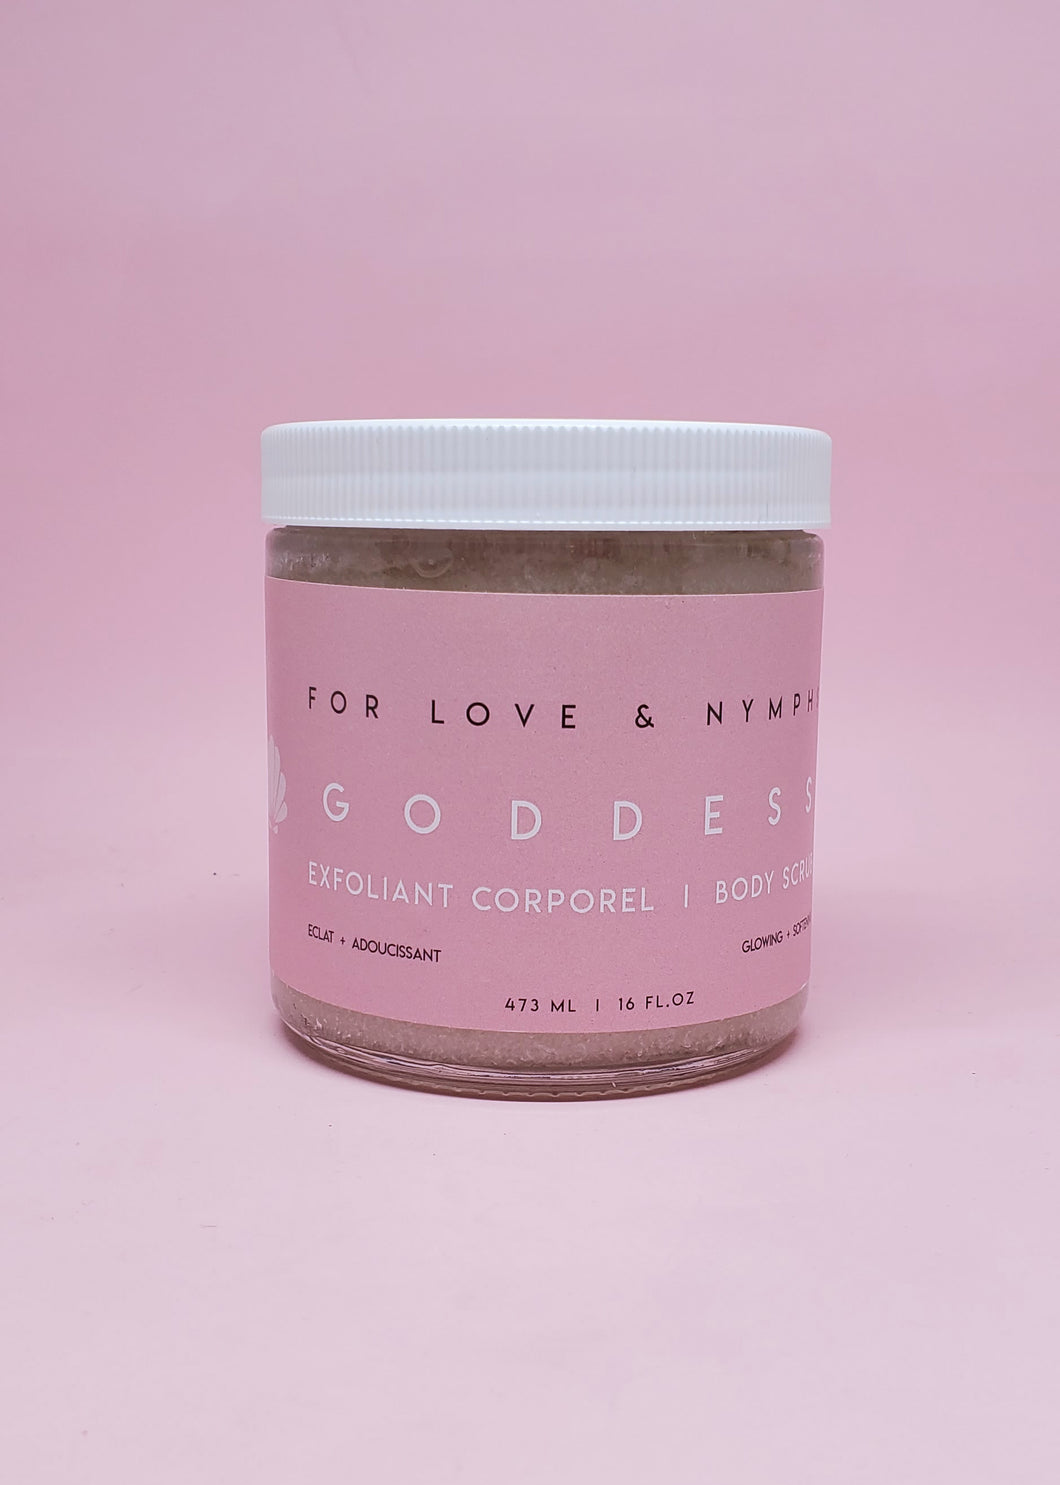 For Love & Nymphs - Exfoliant Corporel Goddess